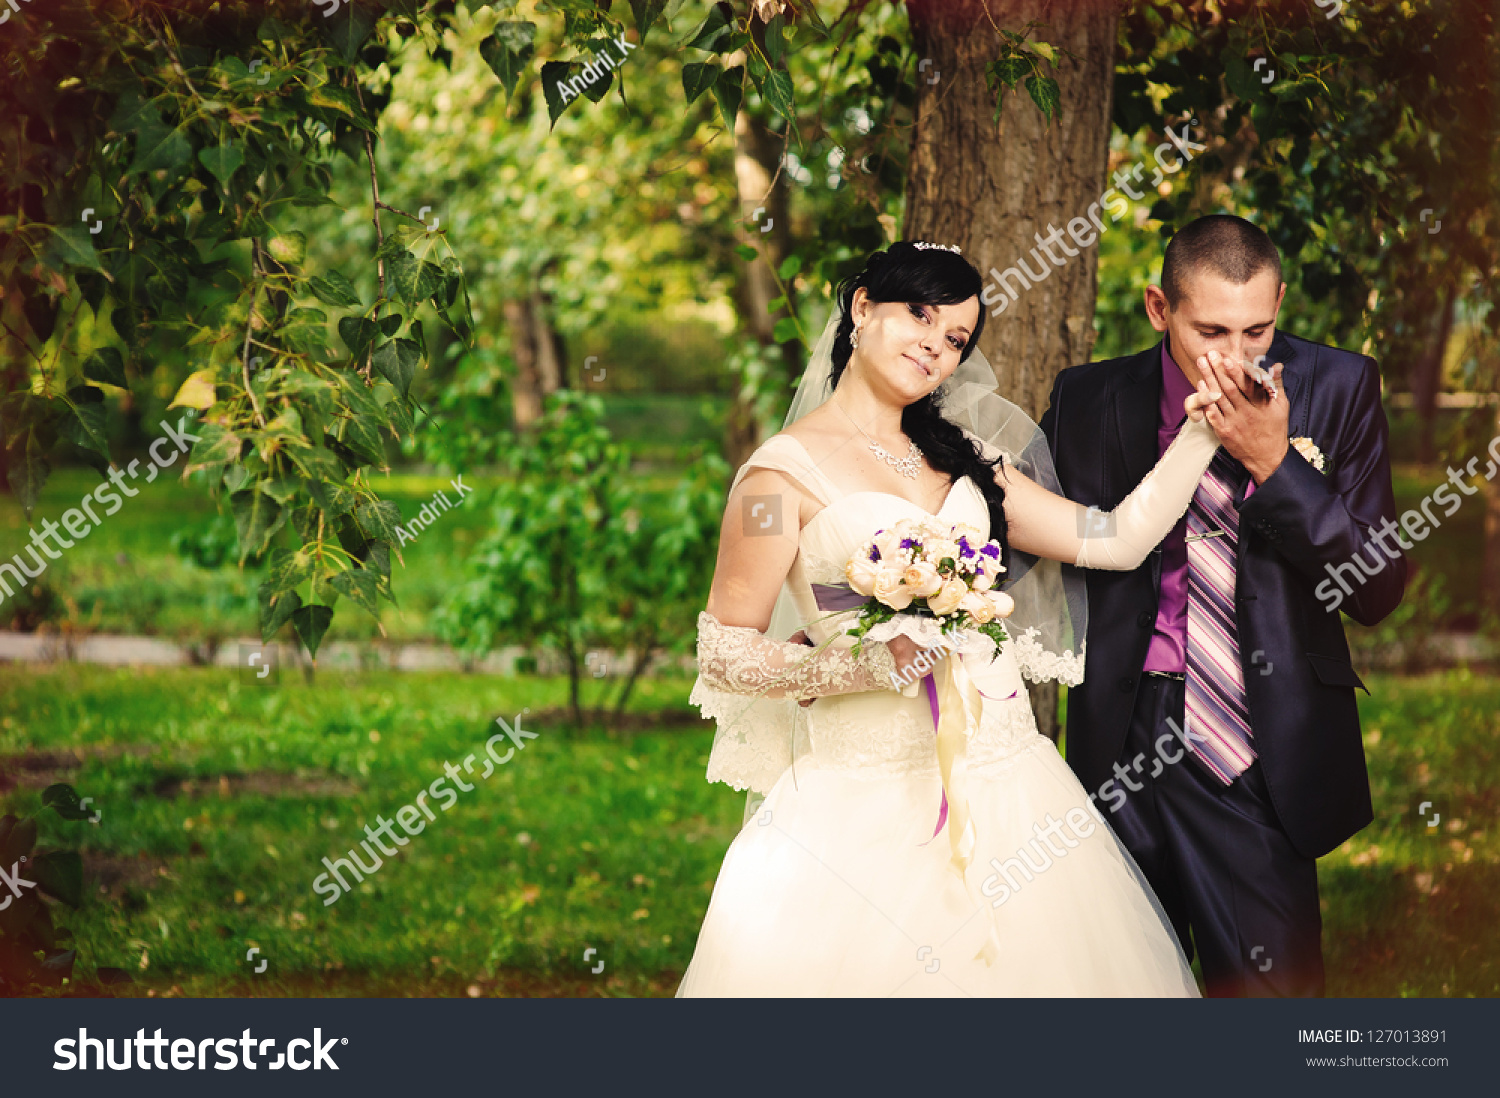 Happy Kiss Bride Groom Near Tree Stock Photo 127013891 - Shutterstock